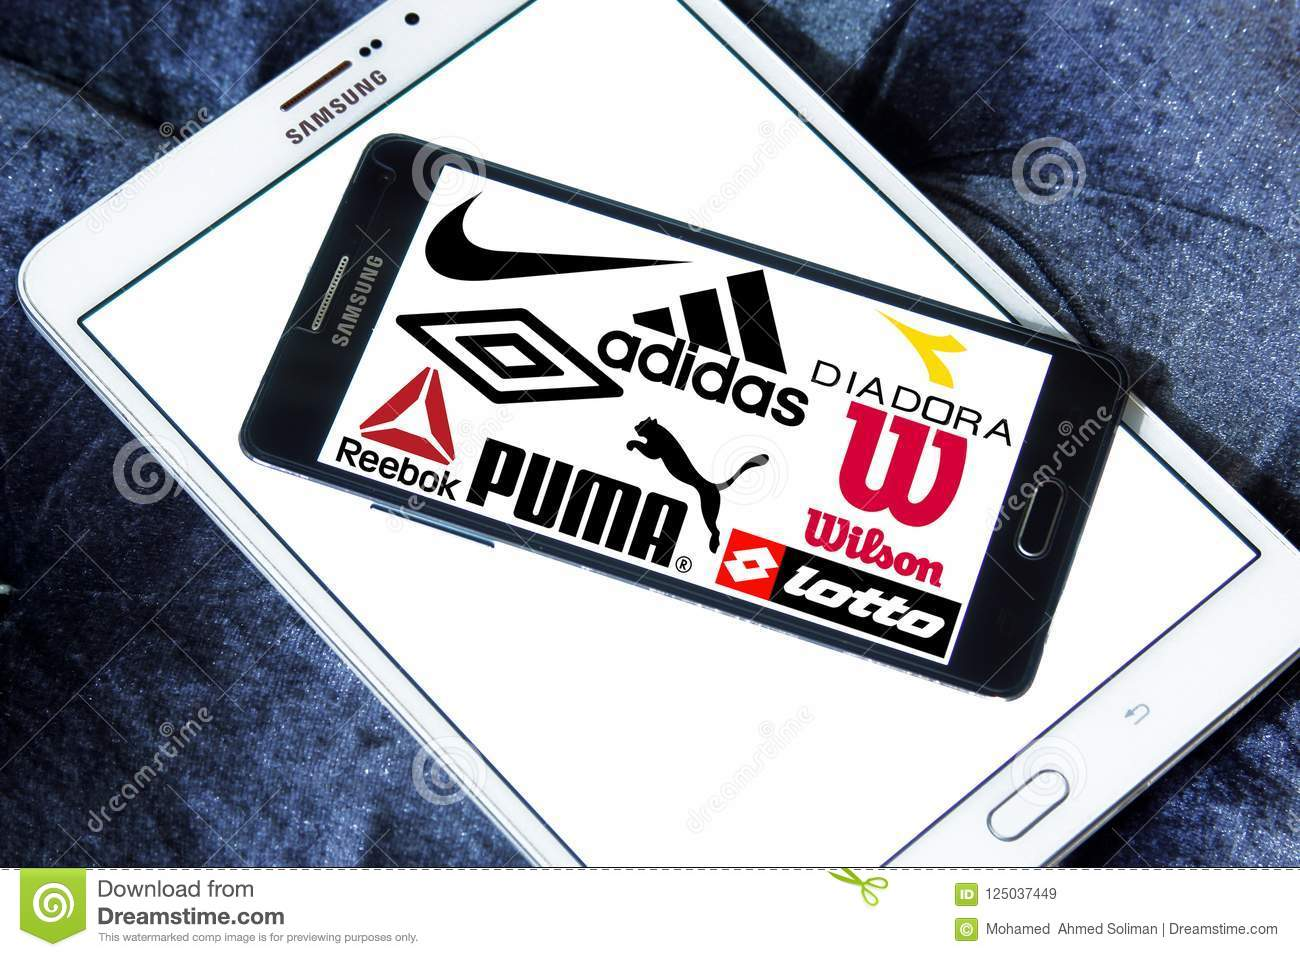 ff56683c4f23 Sportswear logos and icons editorial stock image. Image of industry ...